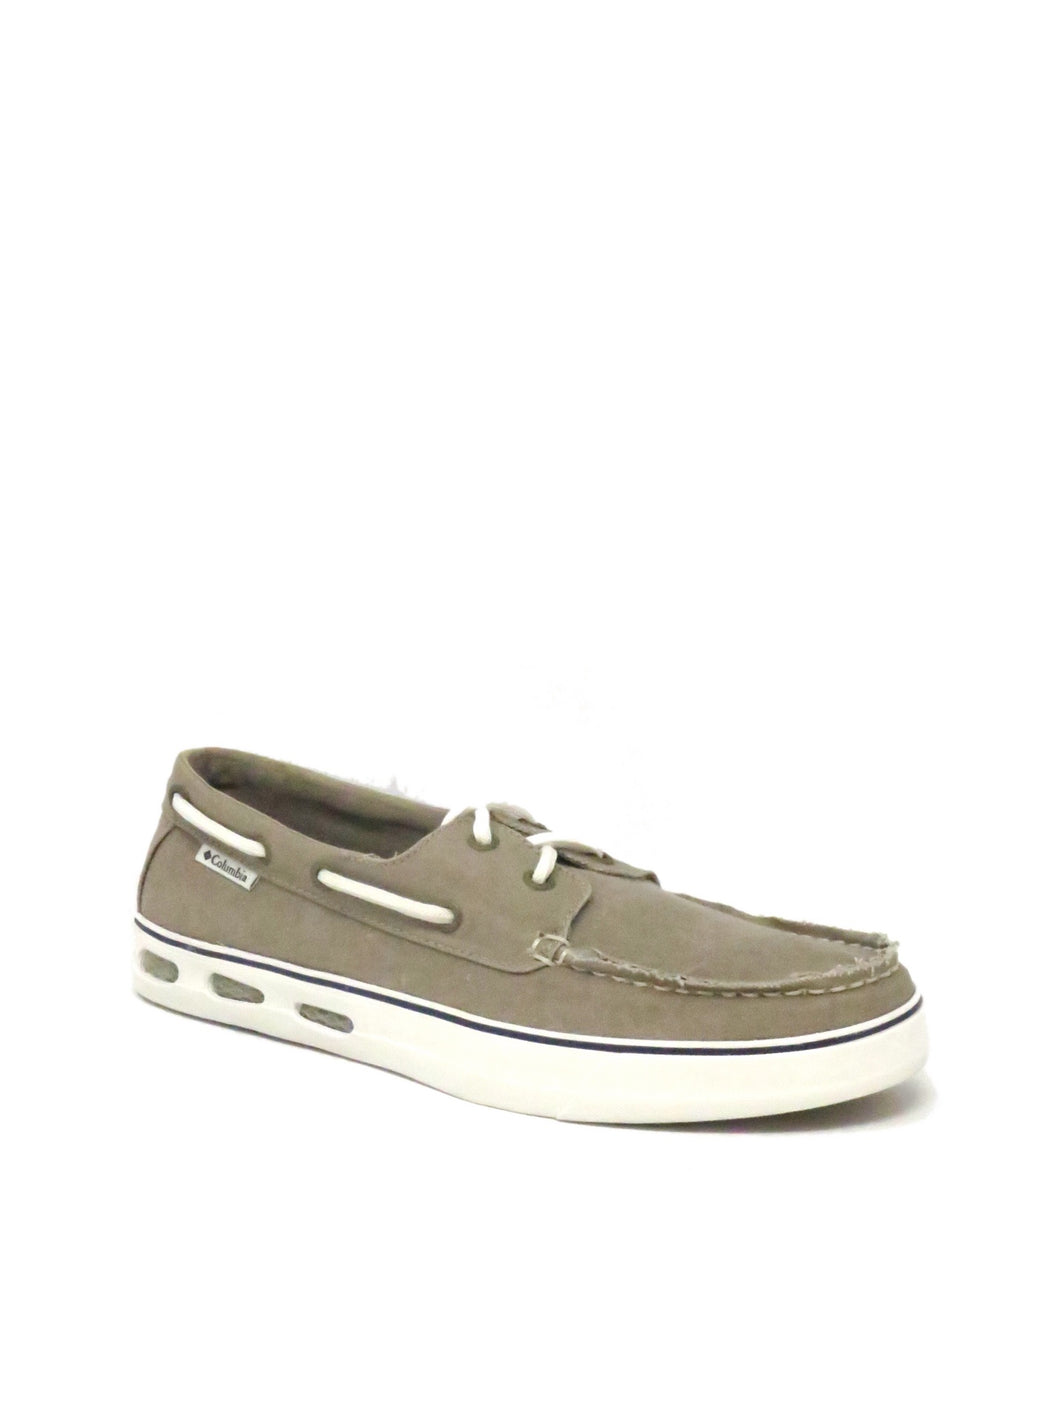 Columbia | BM2618-103 | Vulc'n'Vent Boat Canvas | Silver Sage